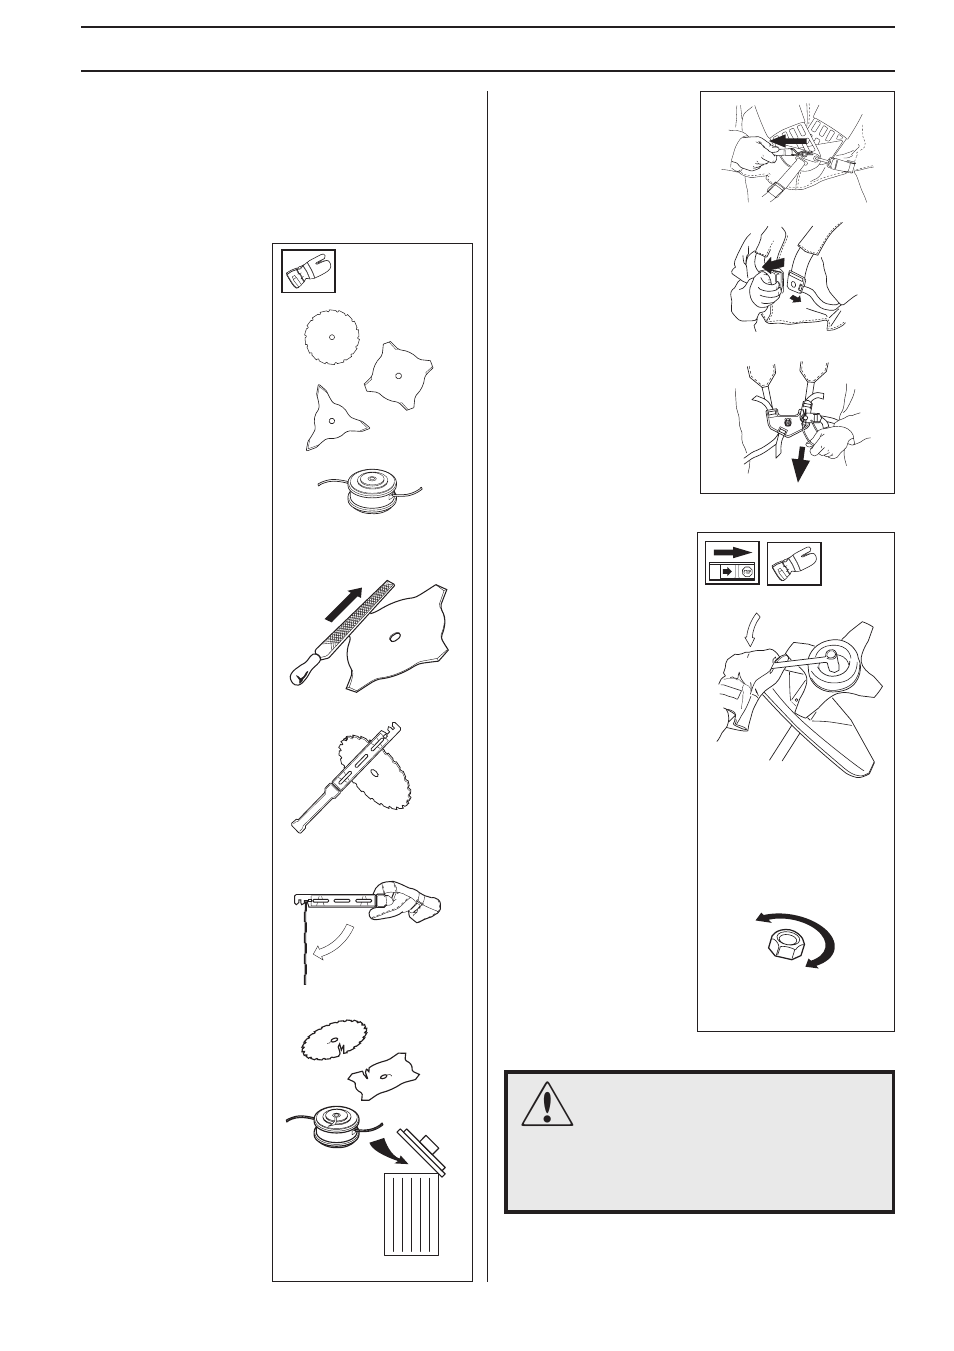 Safety Instructions Jonsered Gr 2036 User Manual Page 9 40